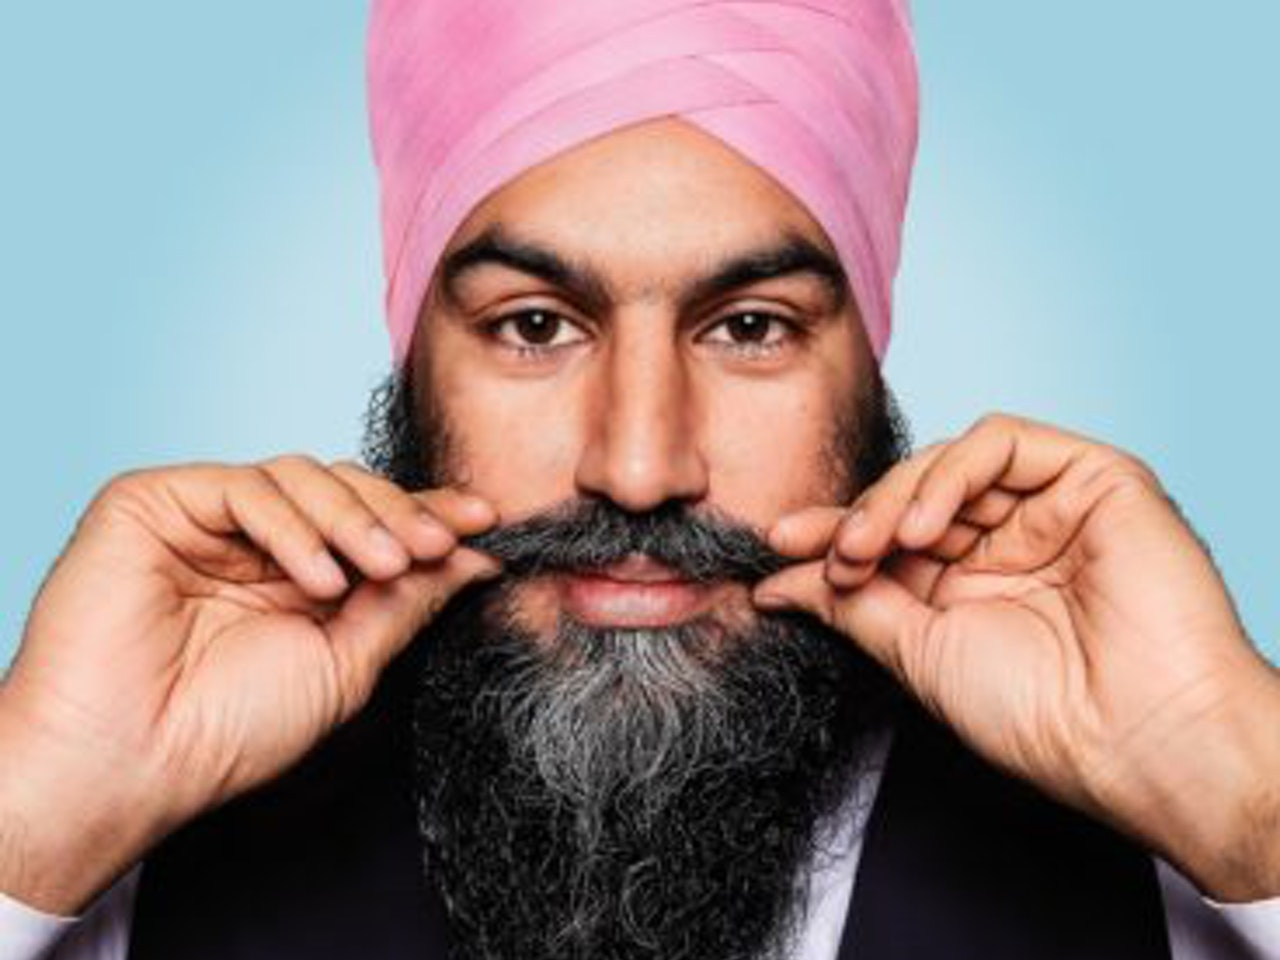 """Season 1 - """"Great Canadians"""" Series - Entrevue """"Canadiens Exceptionnels"""" avec Hon. Jagmeet Singh - Interview with Hon. Jagmeet Singh National NDP Leader"""